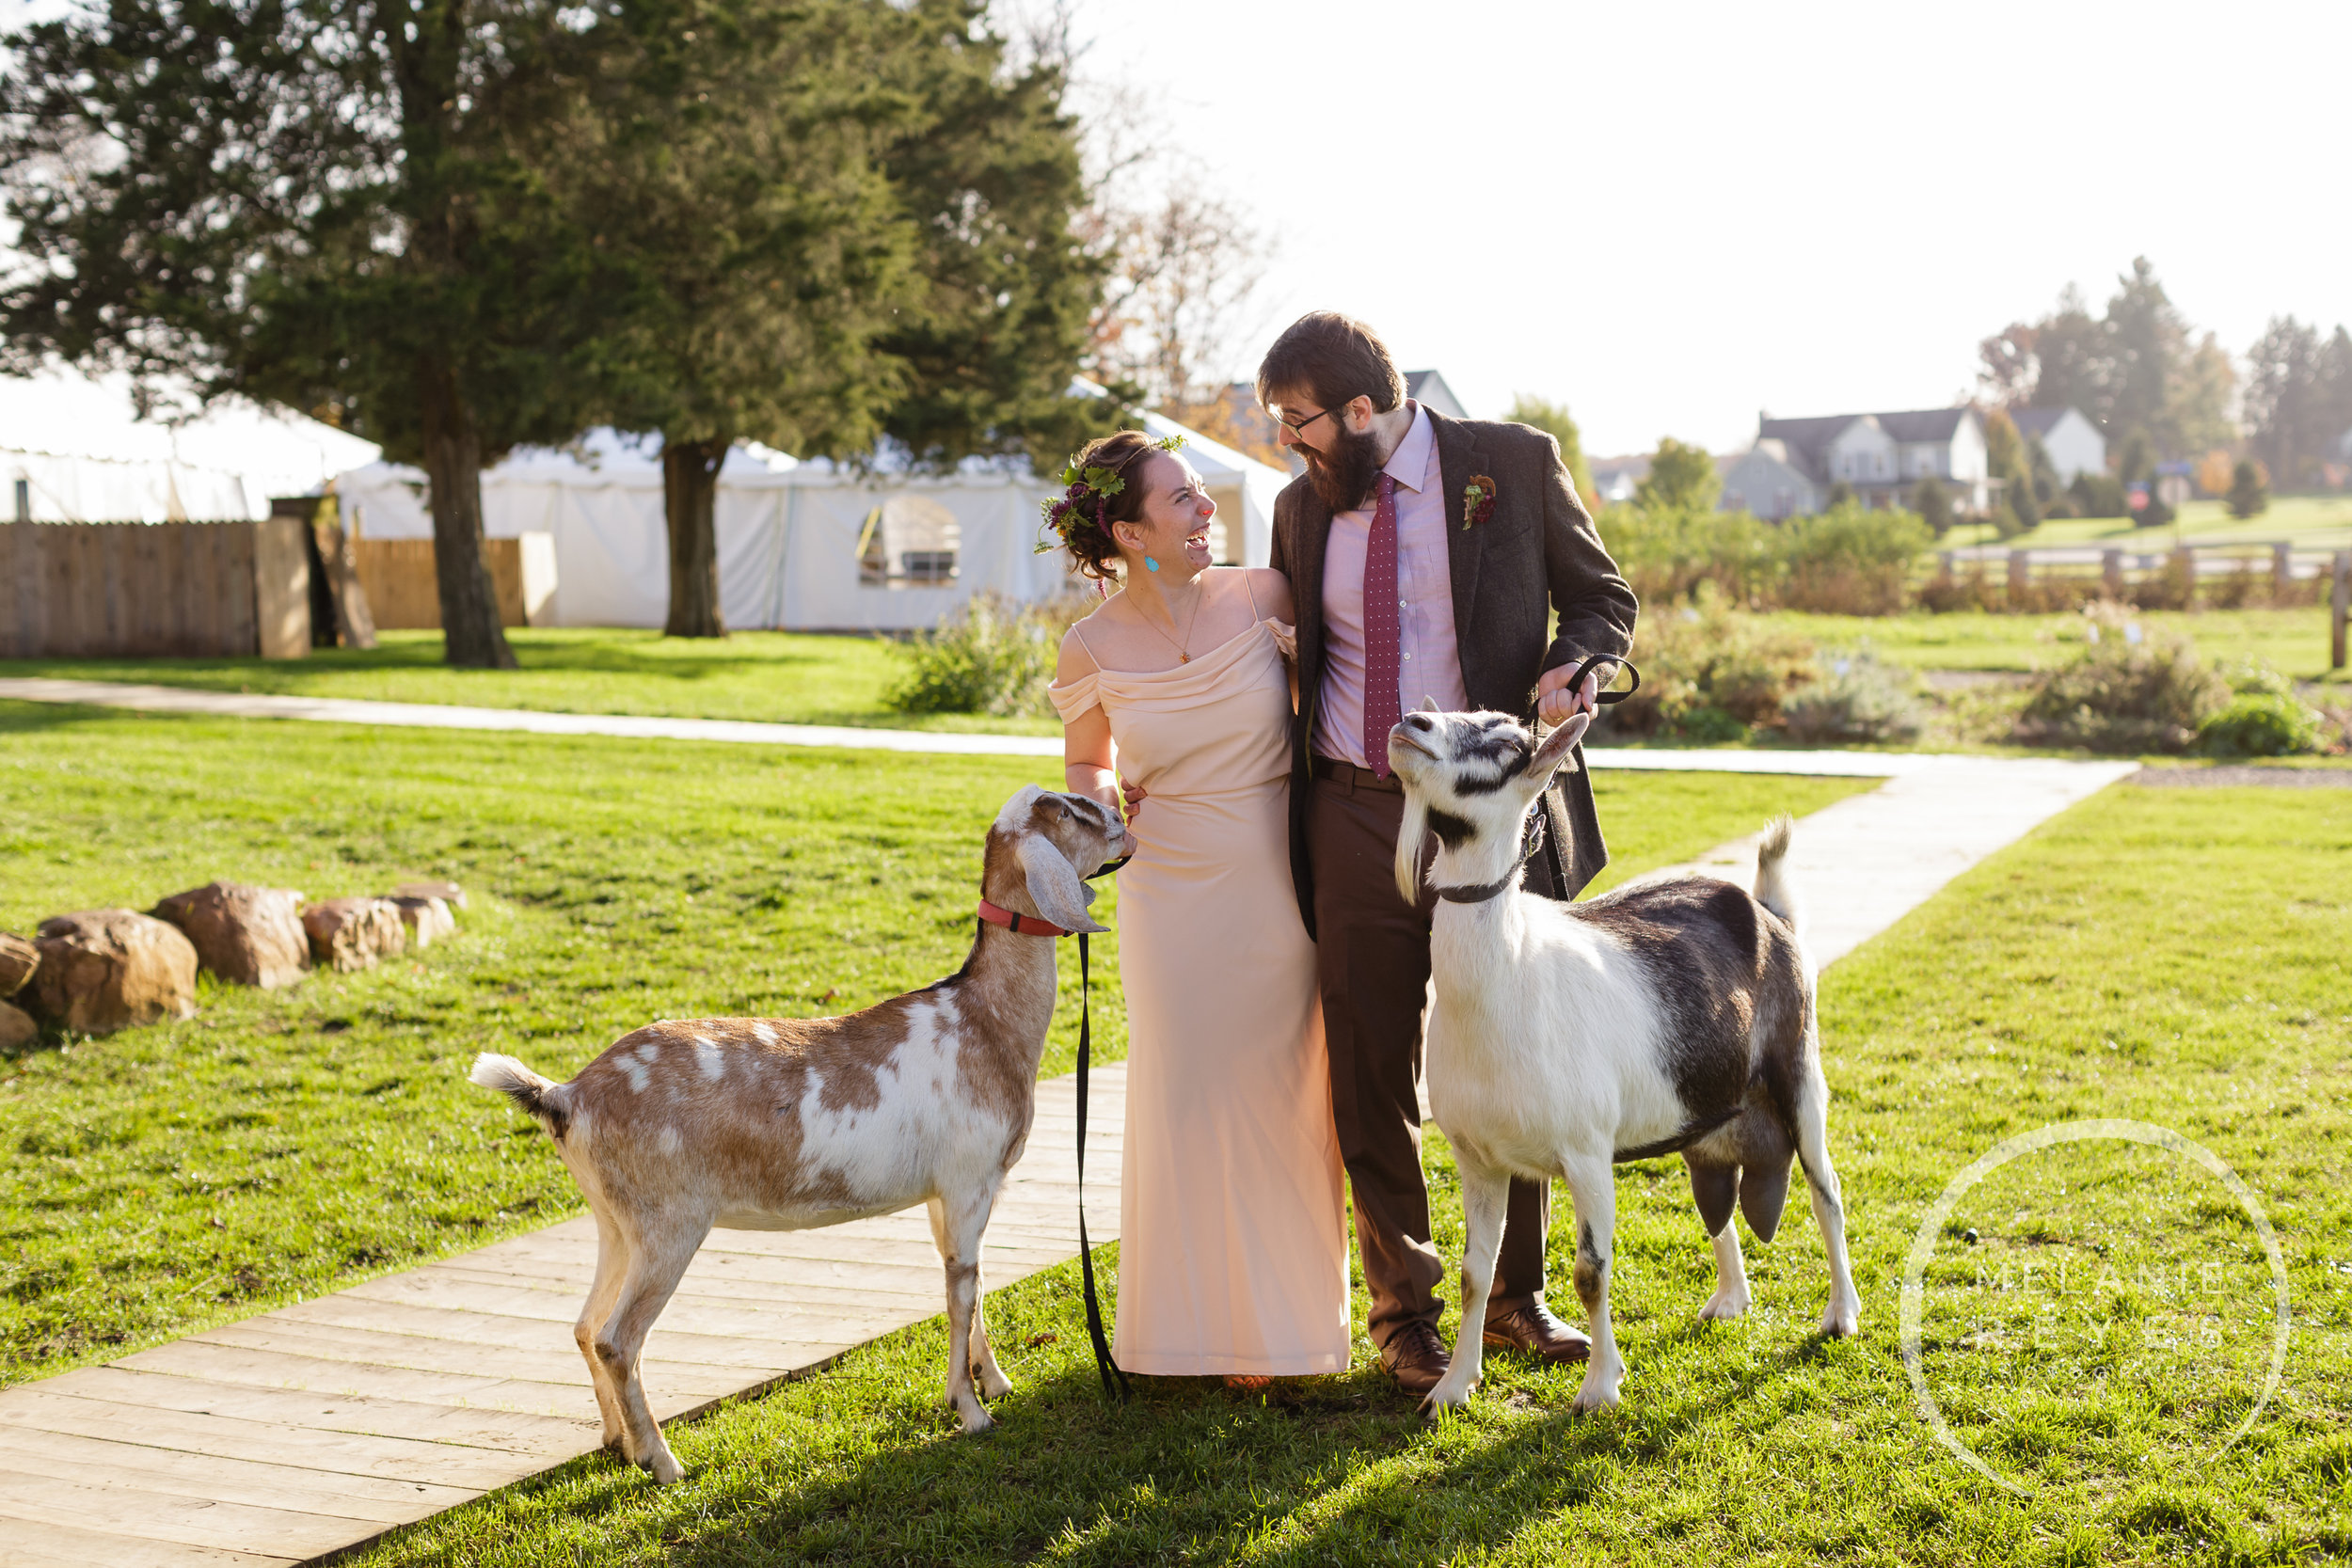 zingermans_cornman_farms_wedding_melanie_reyes_photography_021.JPG